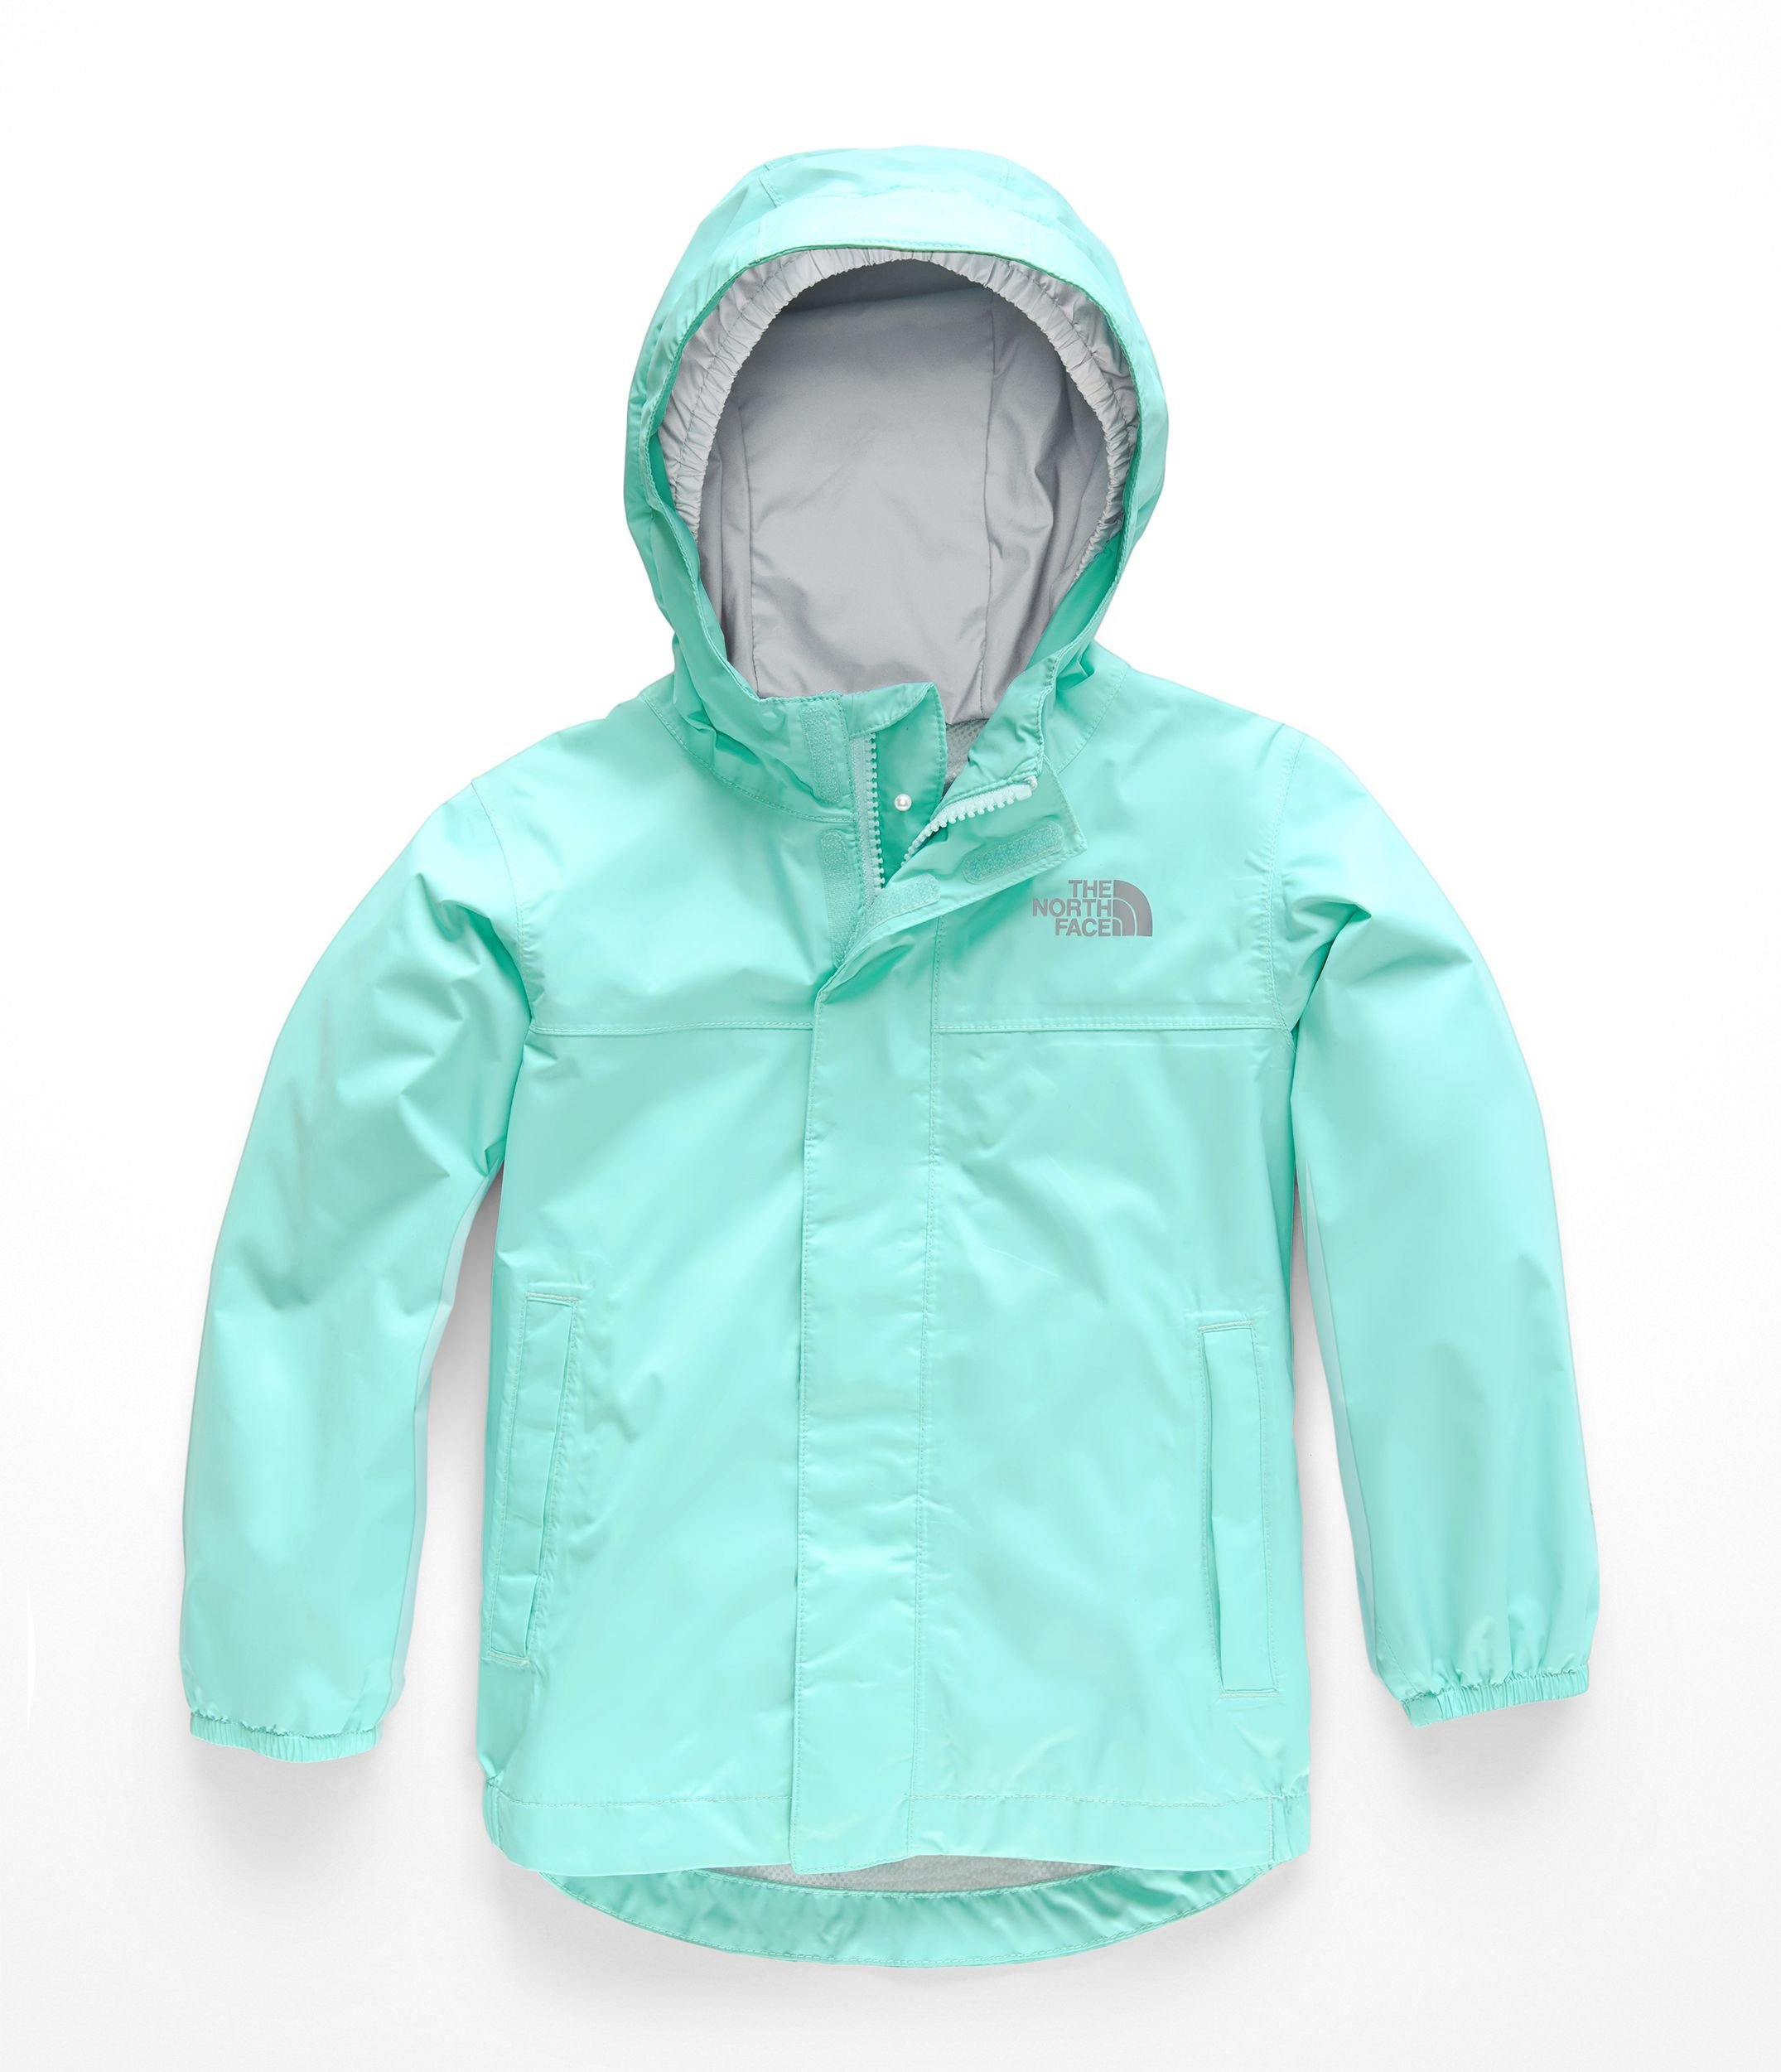 The North Face Todd Tailout Rain Jacket - Mint Blue - 6T